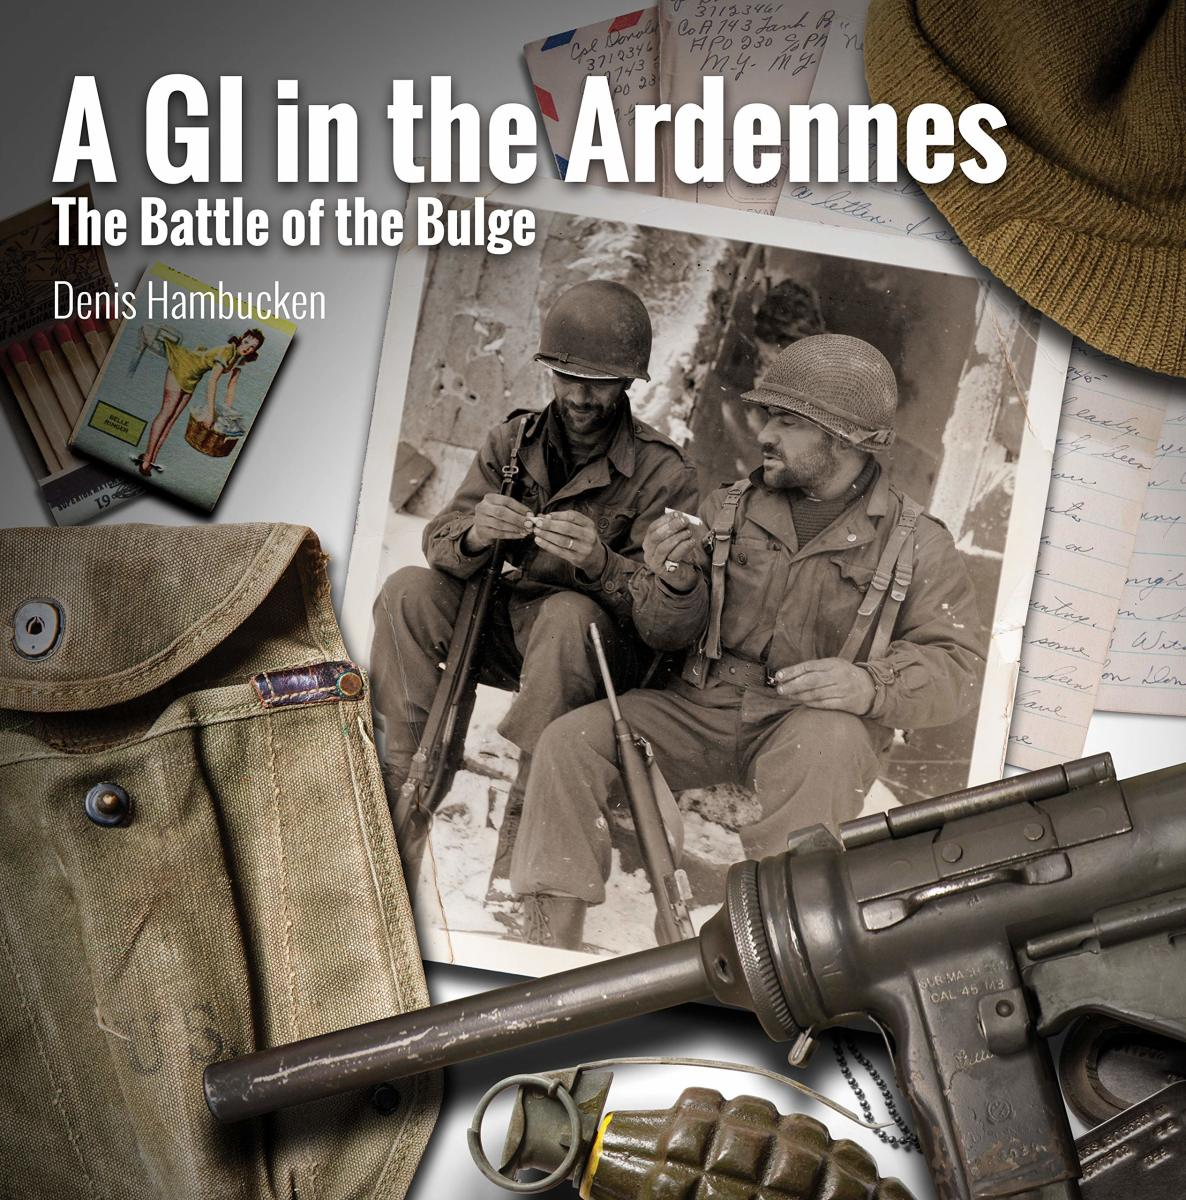 A GI In the Ardennes is available through Amazon for about $20